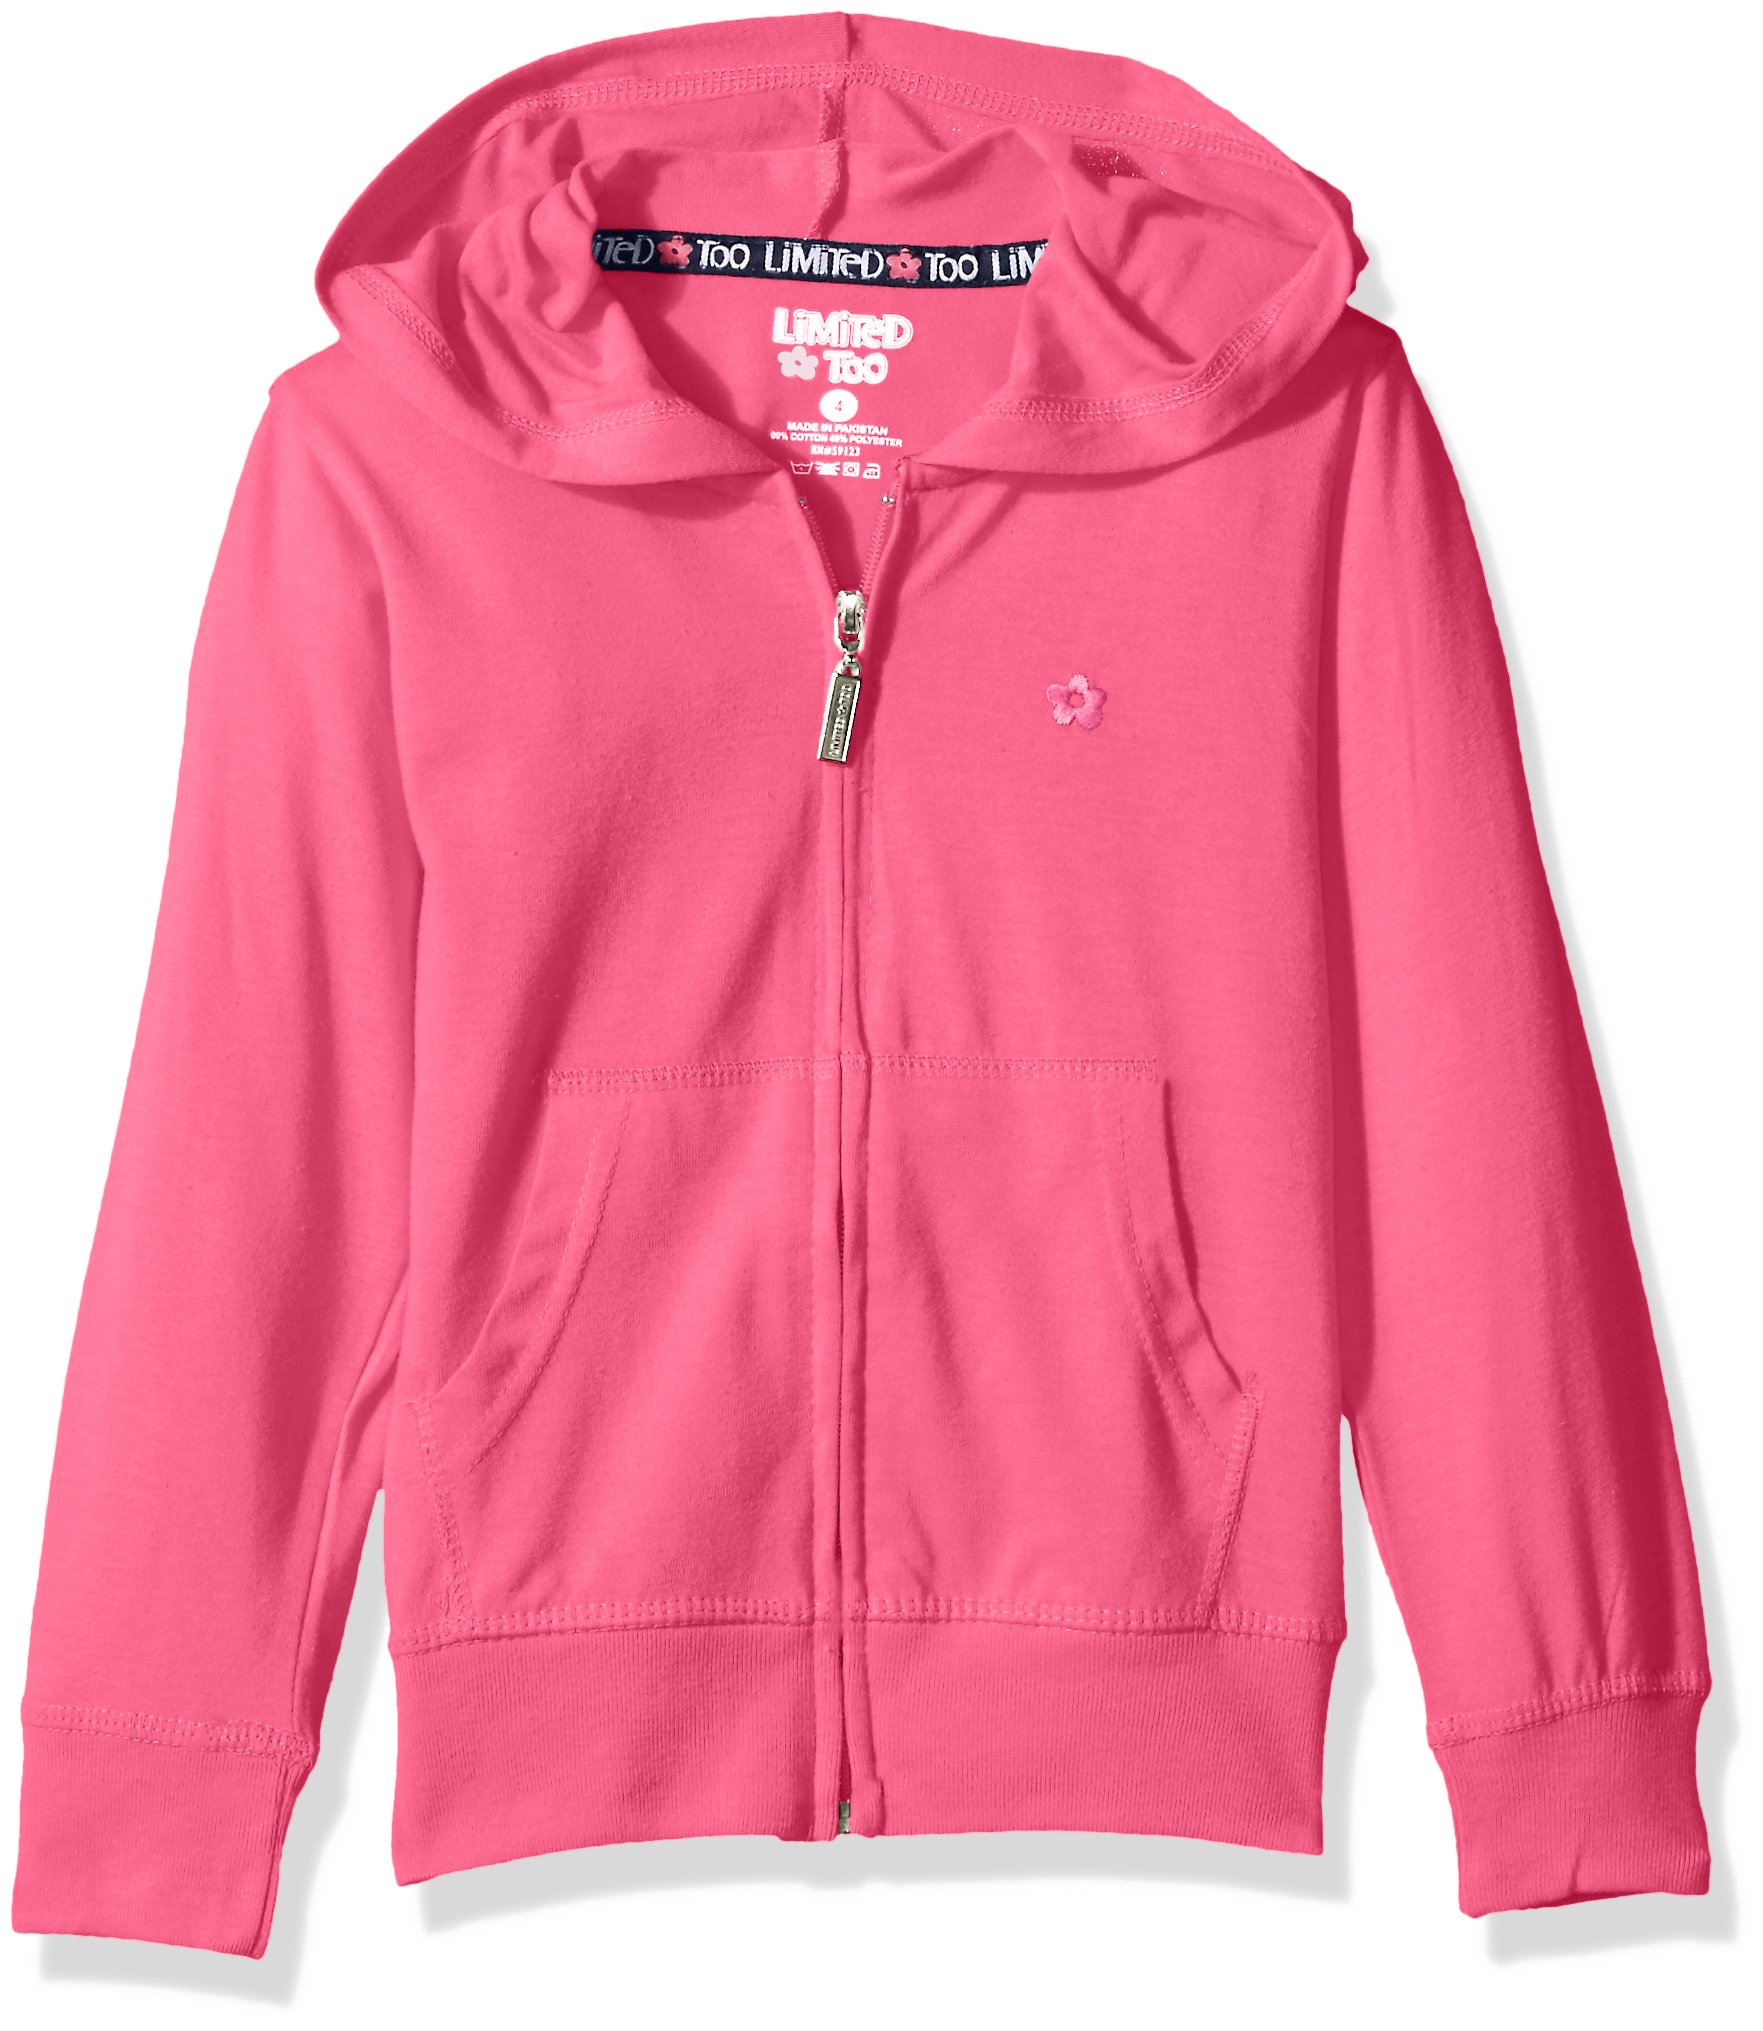 Limited Too Girls' Long Sleeve Zip Front Jersey Hoodie,Fuchsia,14/16